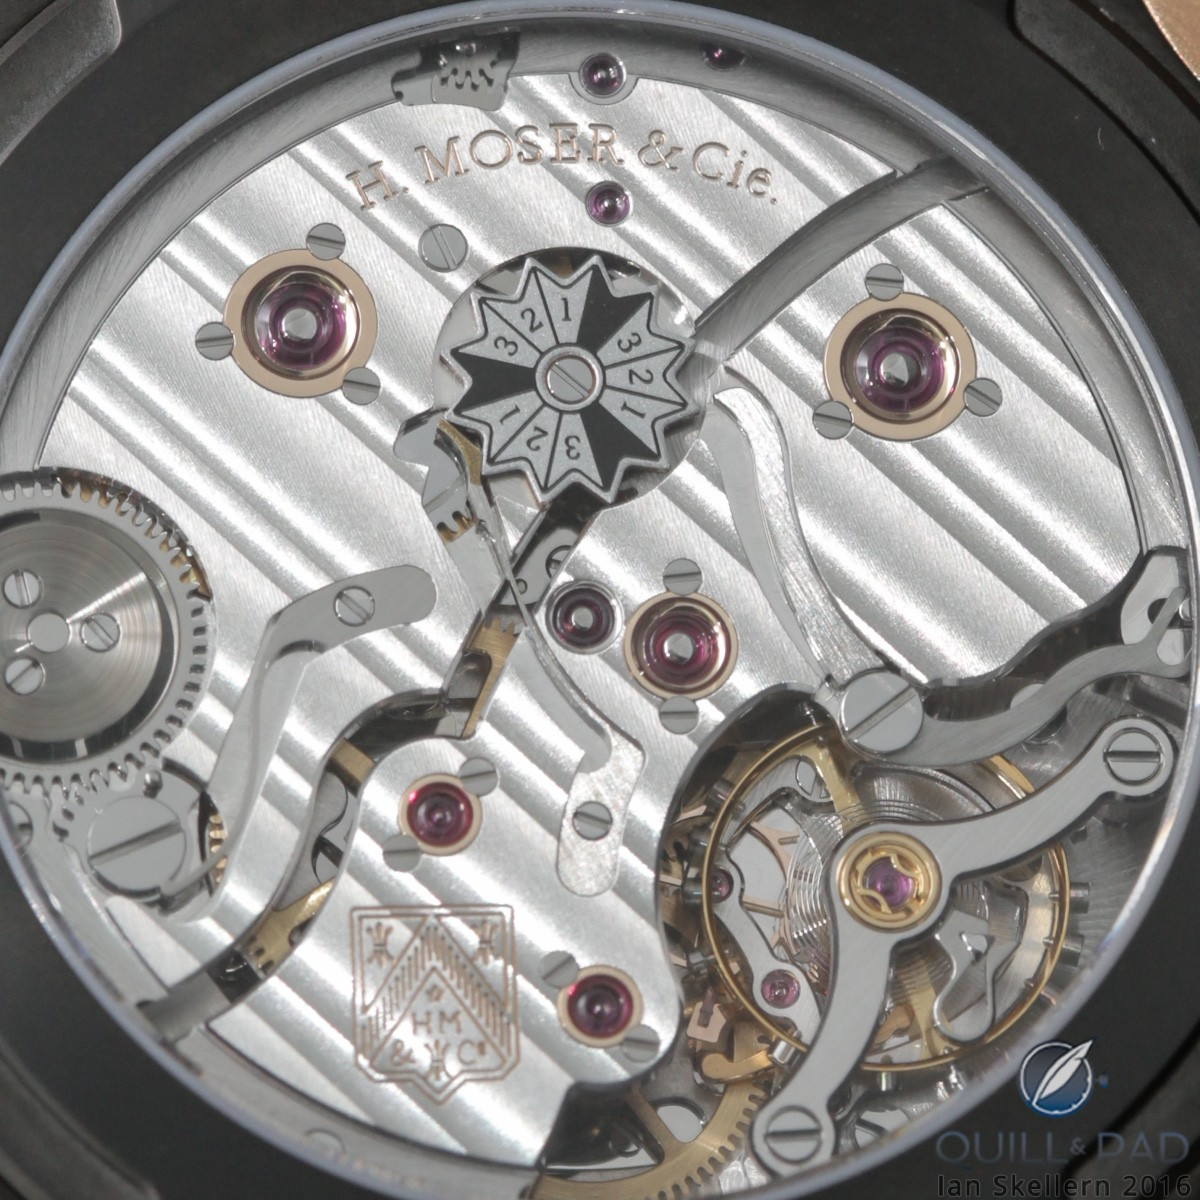 A close look at the movement of the H. Moser & Cie Endeavour Perpetual Calendar